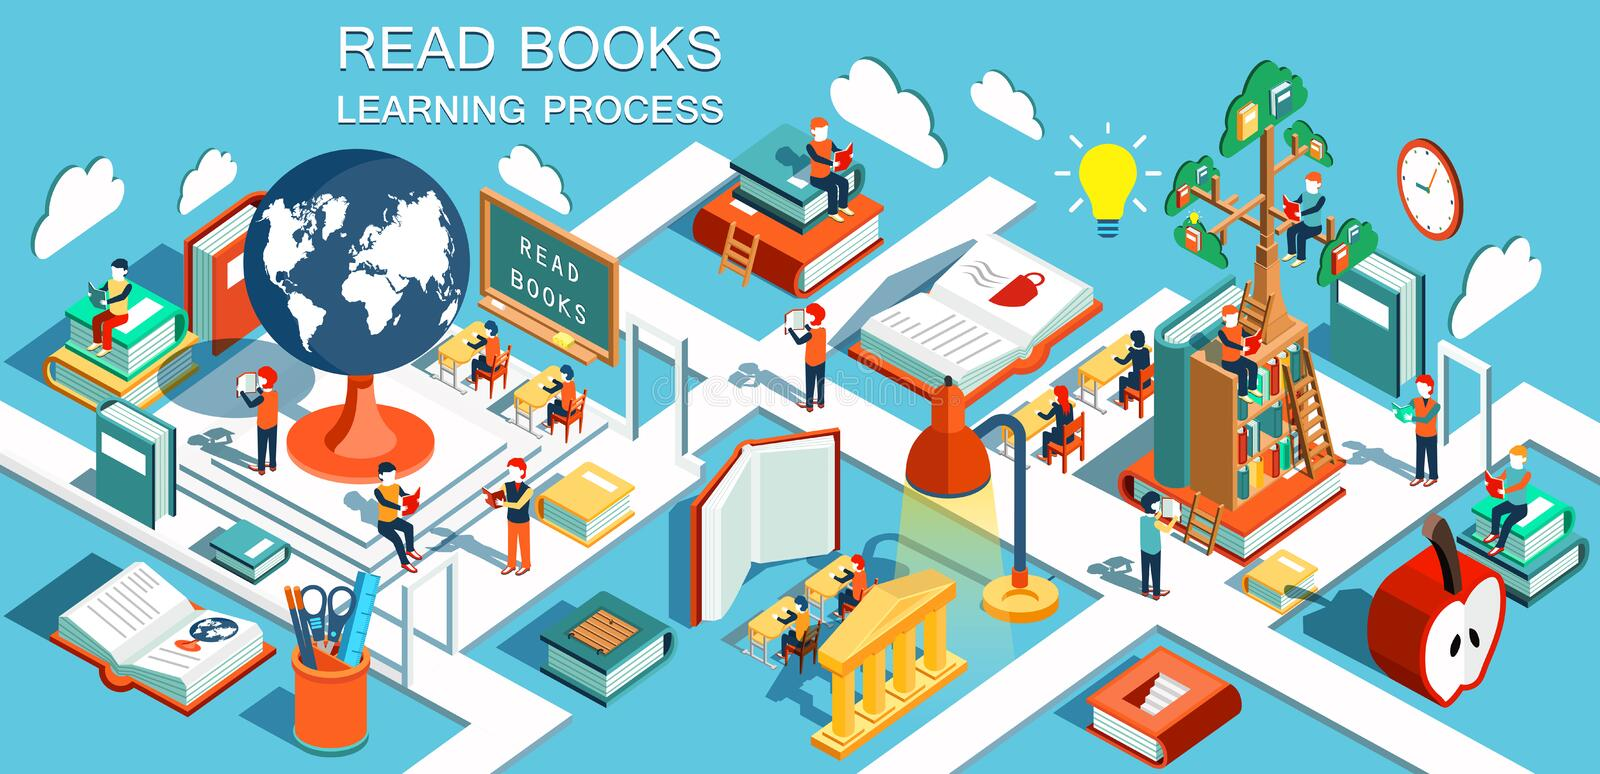 The process of education, the concept of learning and reading books in the library and in the classroom. royalty free illustration